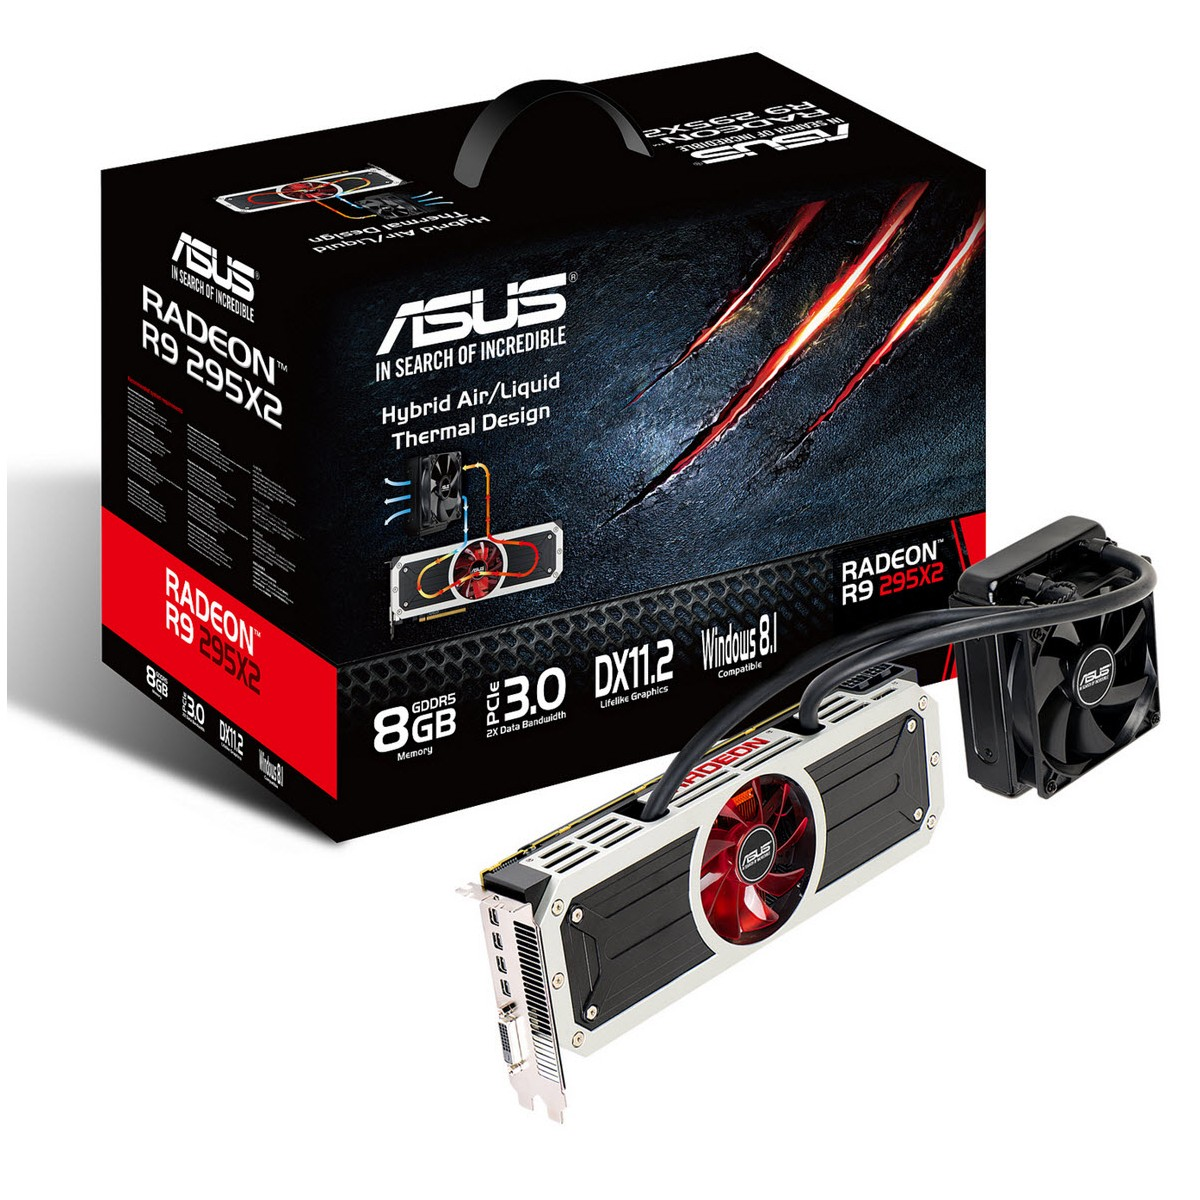 AMD: Radeon R9 Series Graphics Card Prices Are Reasonable Again